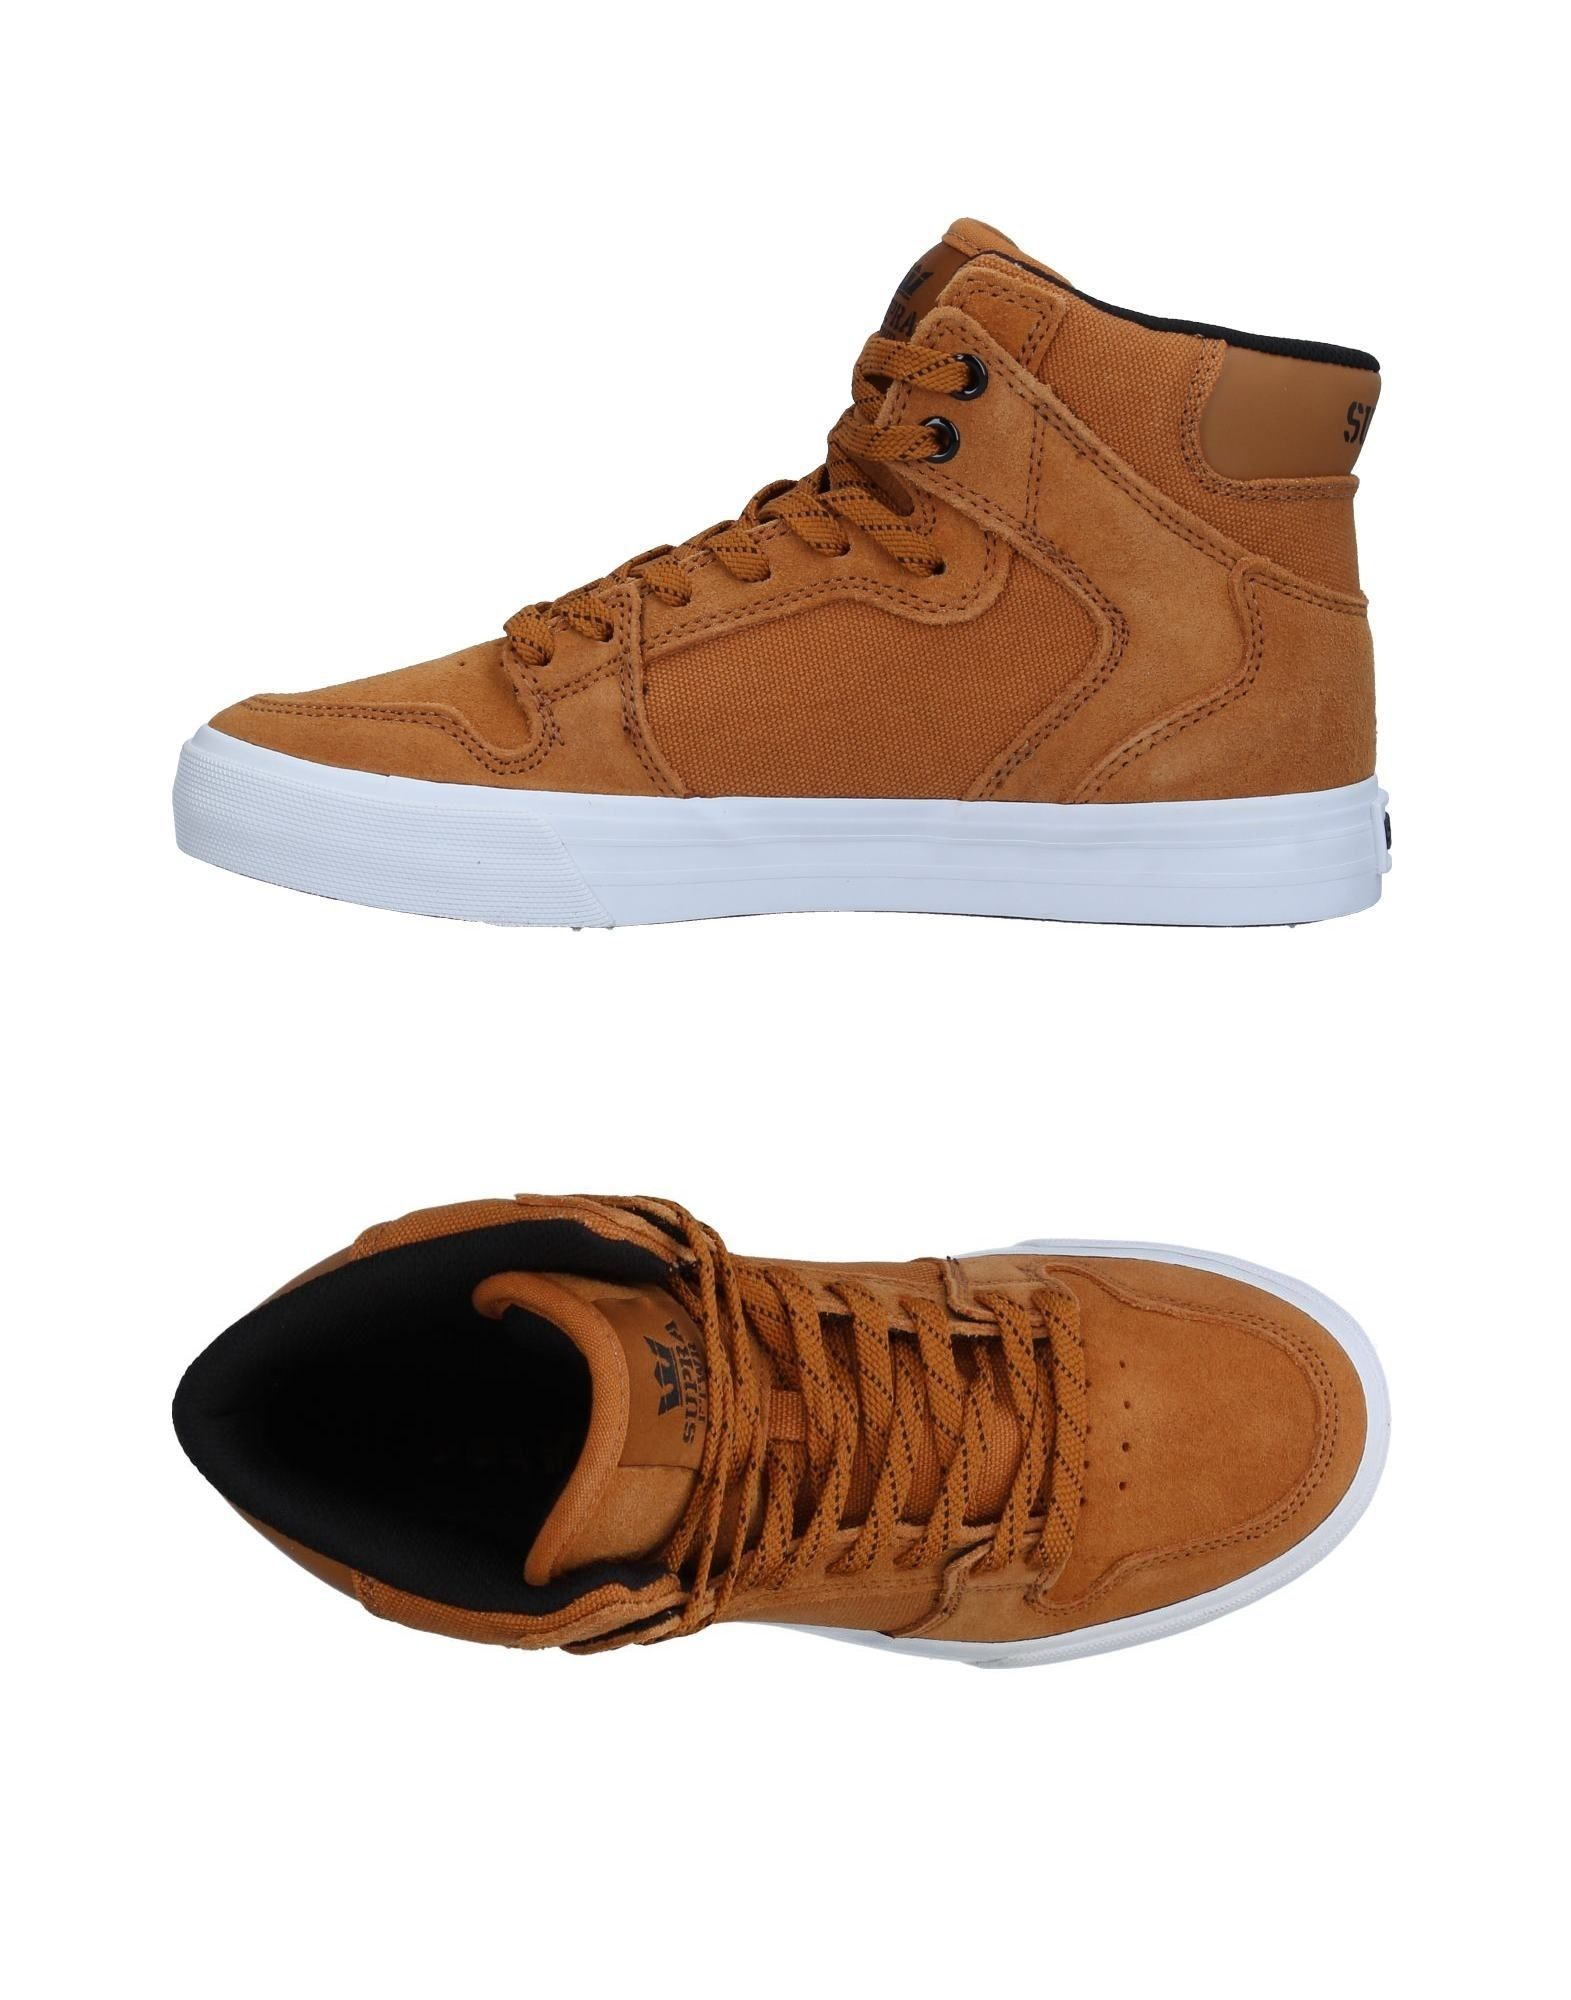 Sneakers Supra Homme - Sneakers Supra  Camel Remise de marque